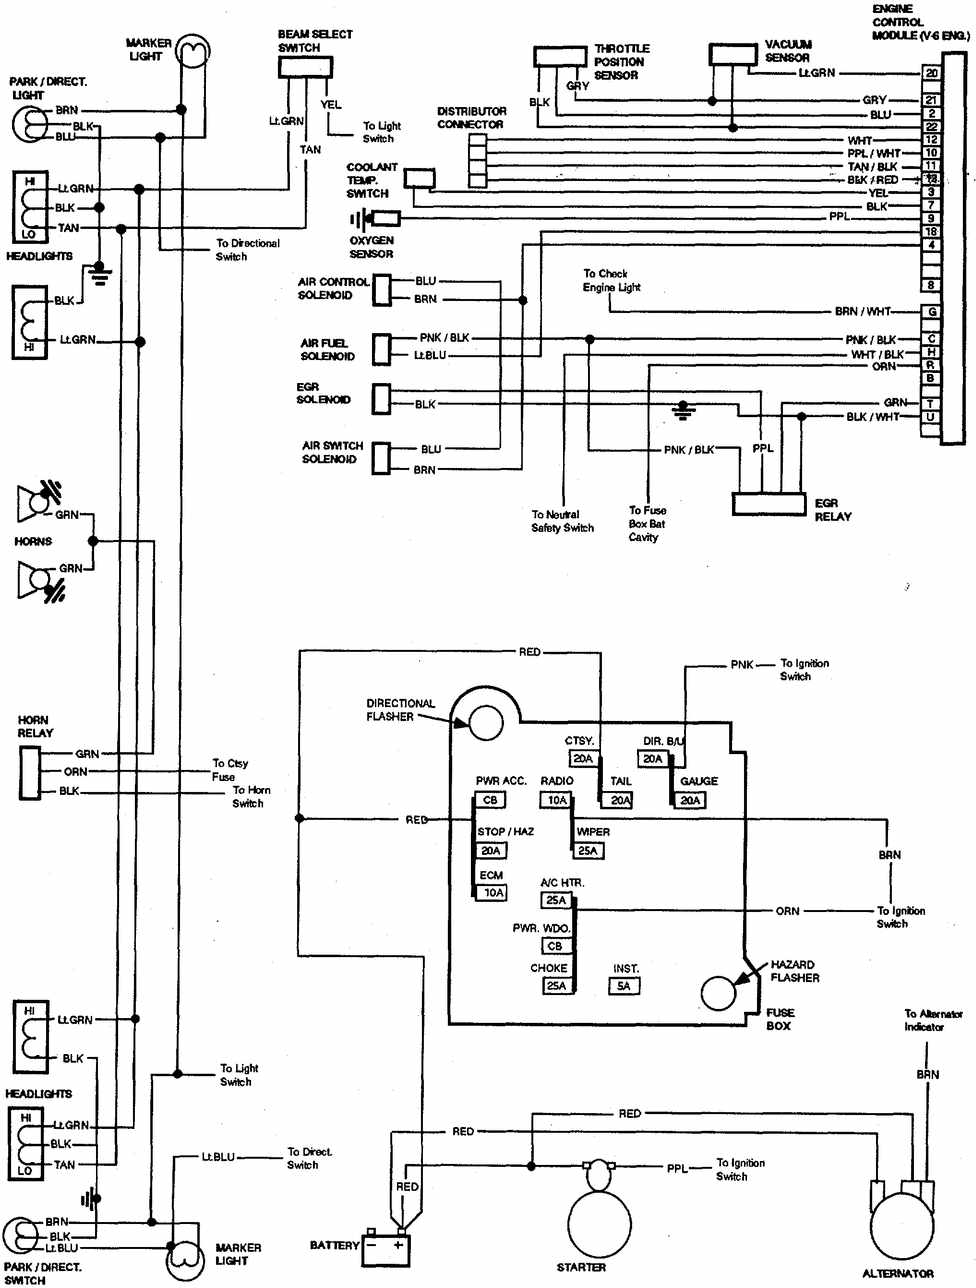 1991 chevy silverado 1500 wiring diagram